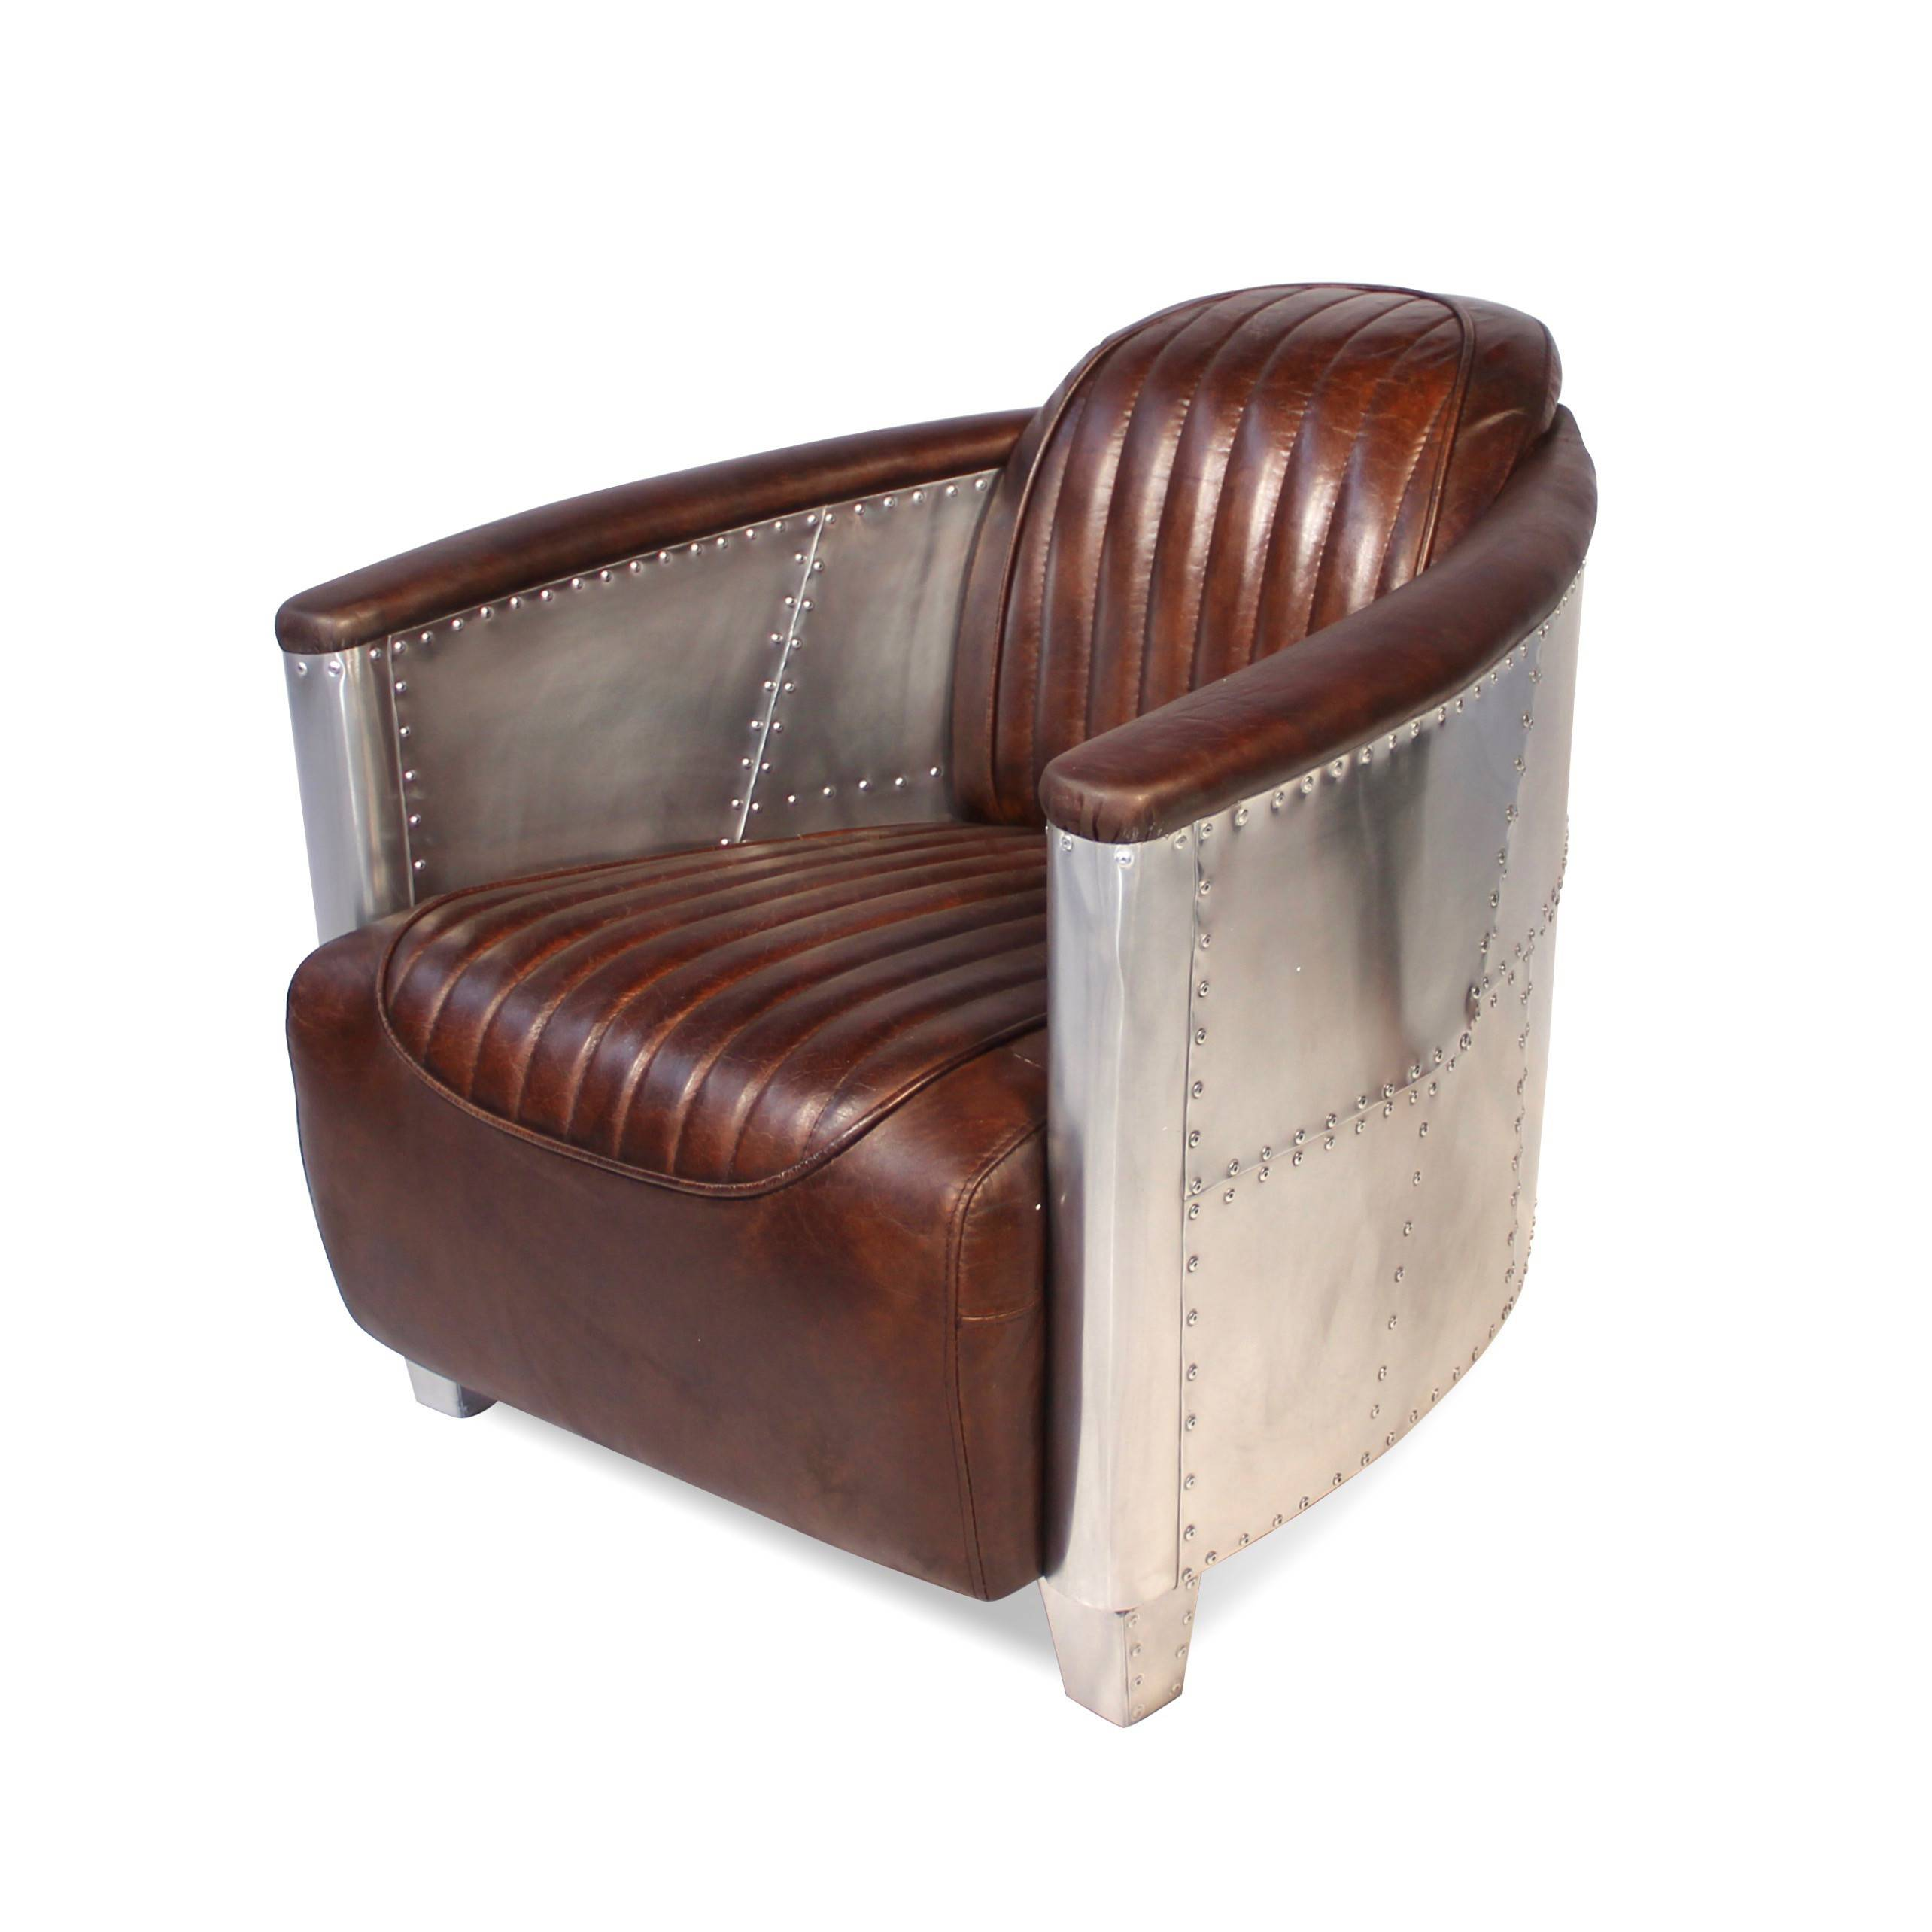 fauteuil aviateur en aluminium et cuir marron vintage patin. Black Bedroom Furniture Sets. Home Design Ideas